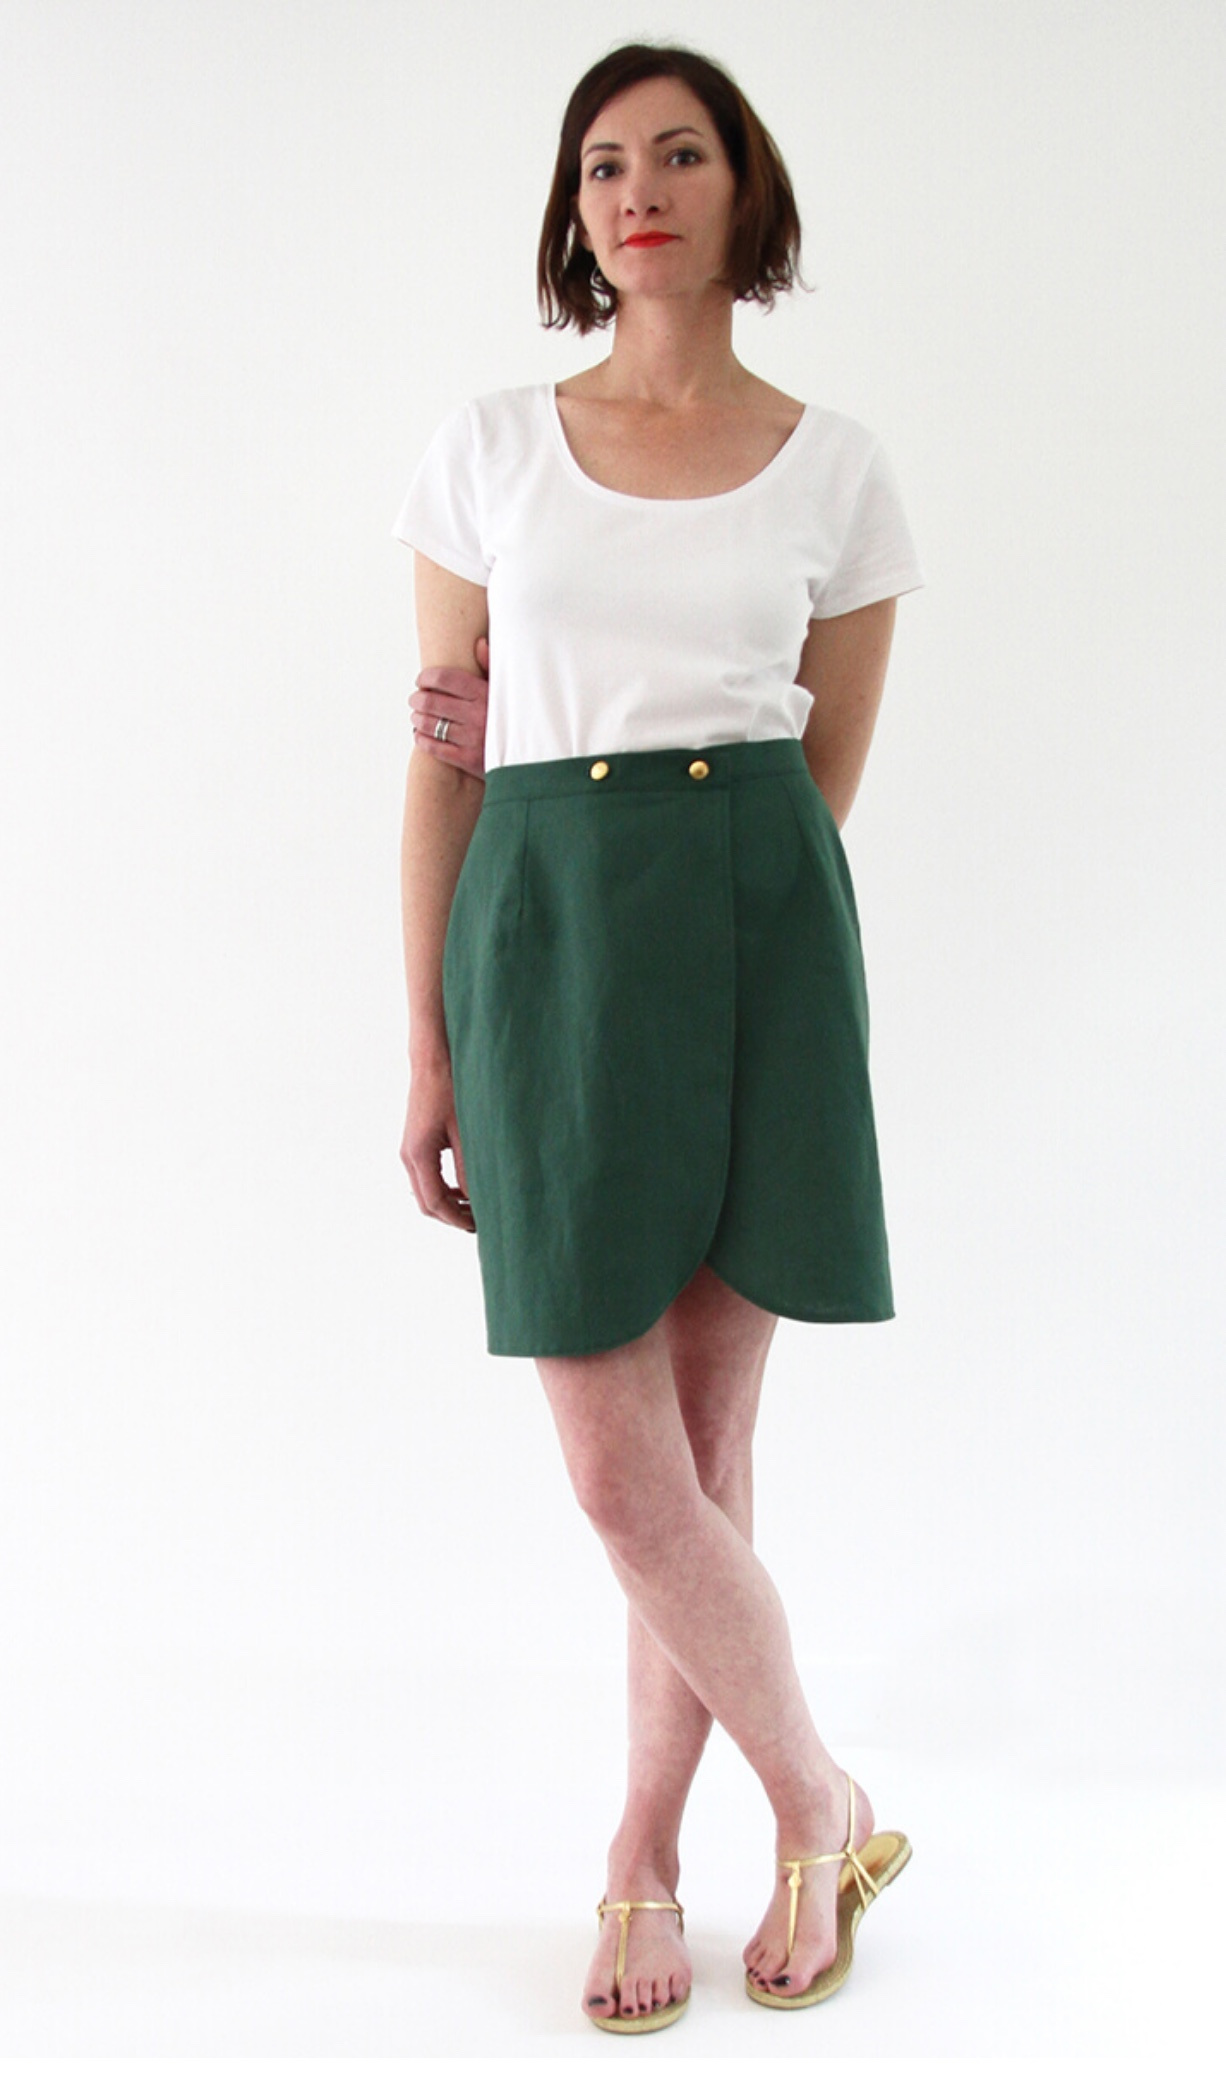 Malo wrap skirt sewing pattern from I AM Patterns